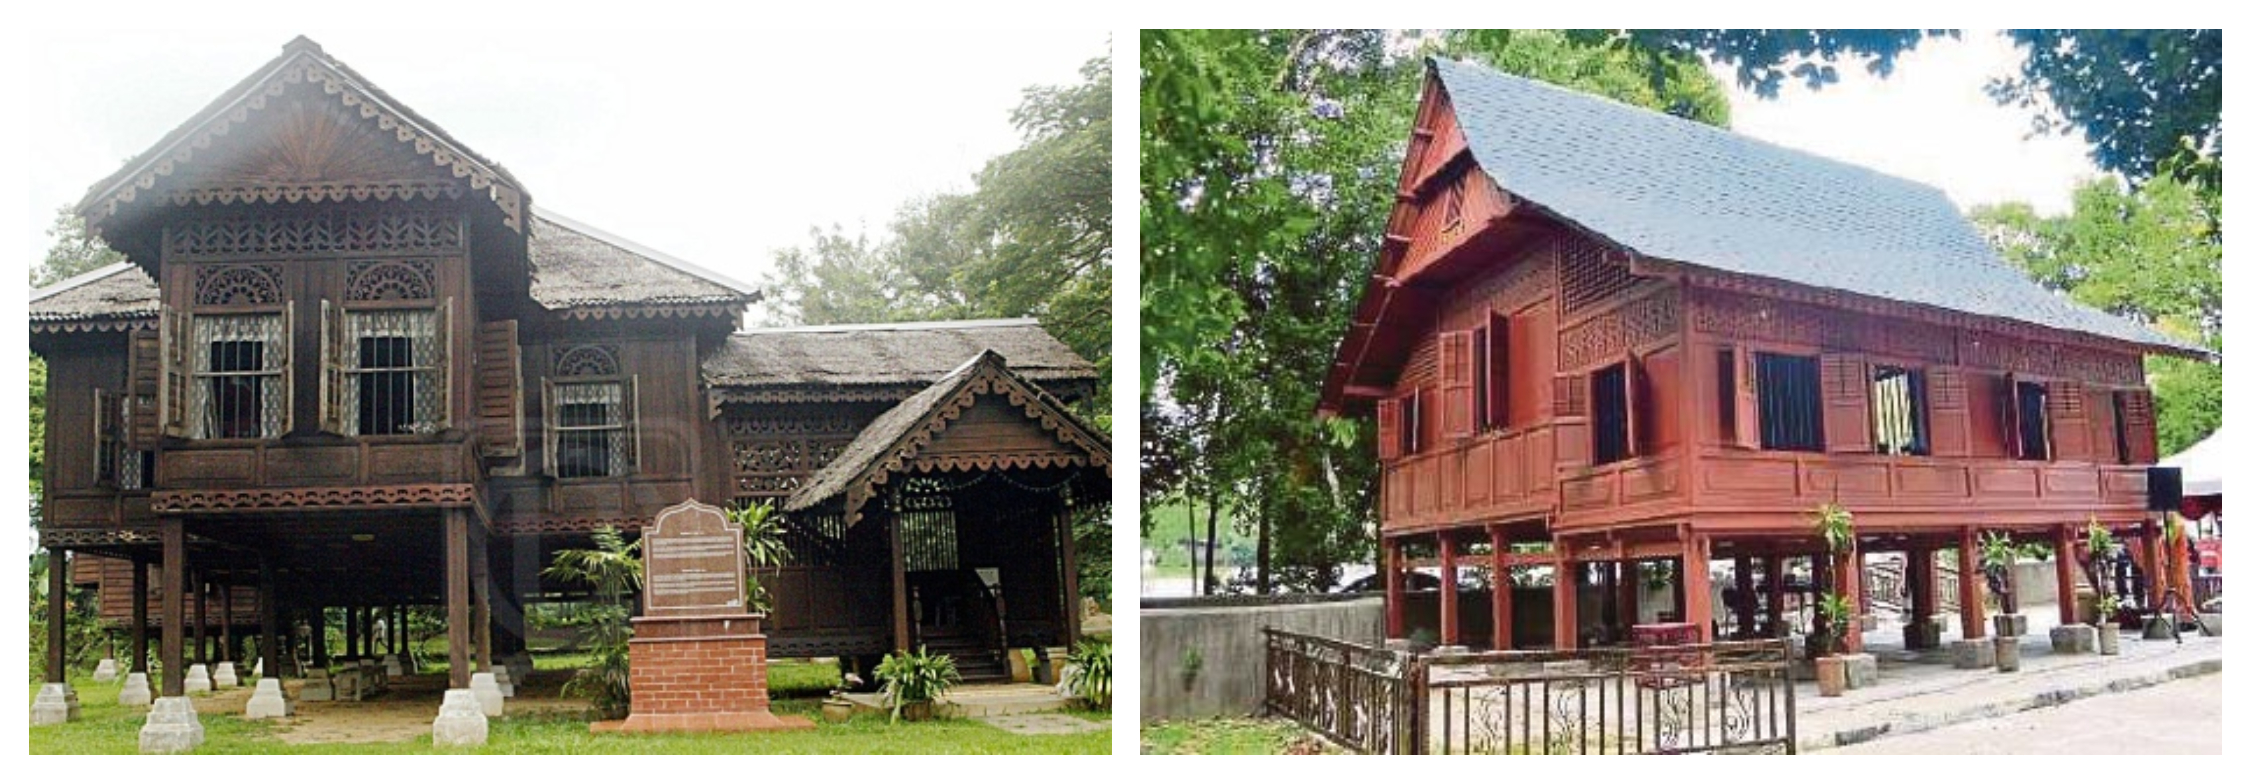 Well... Malay traditional house (left) and Bugis house (right). Images from Berita Harian and Utusan